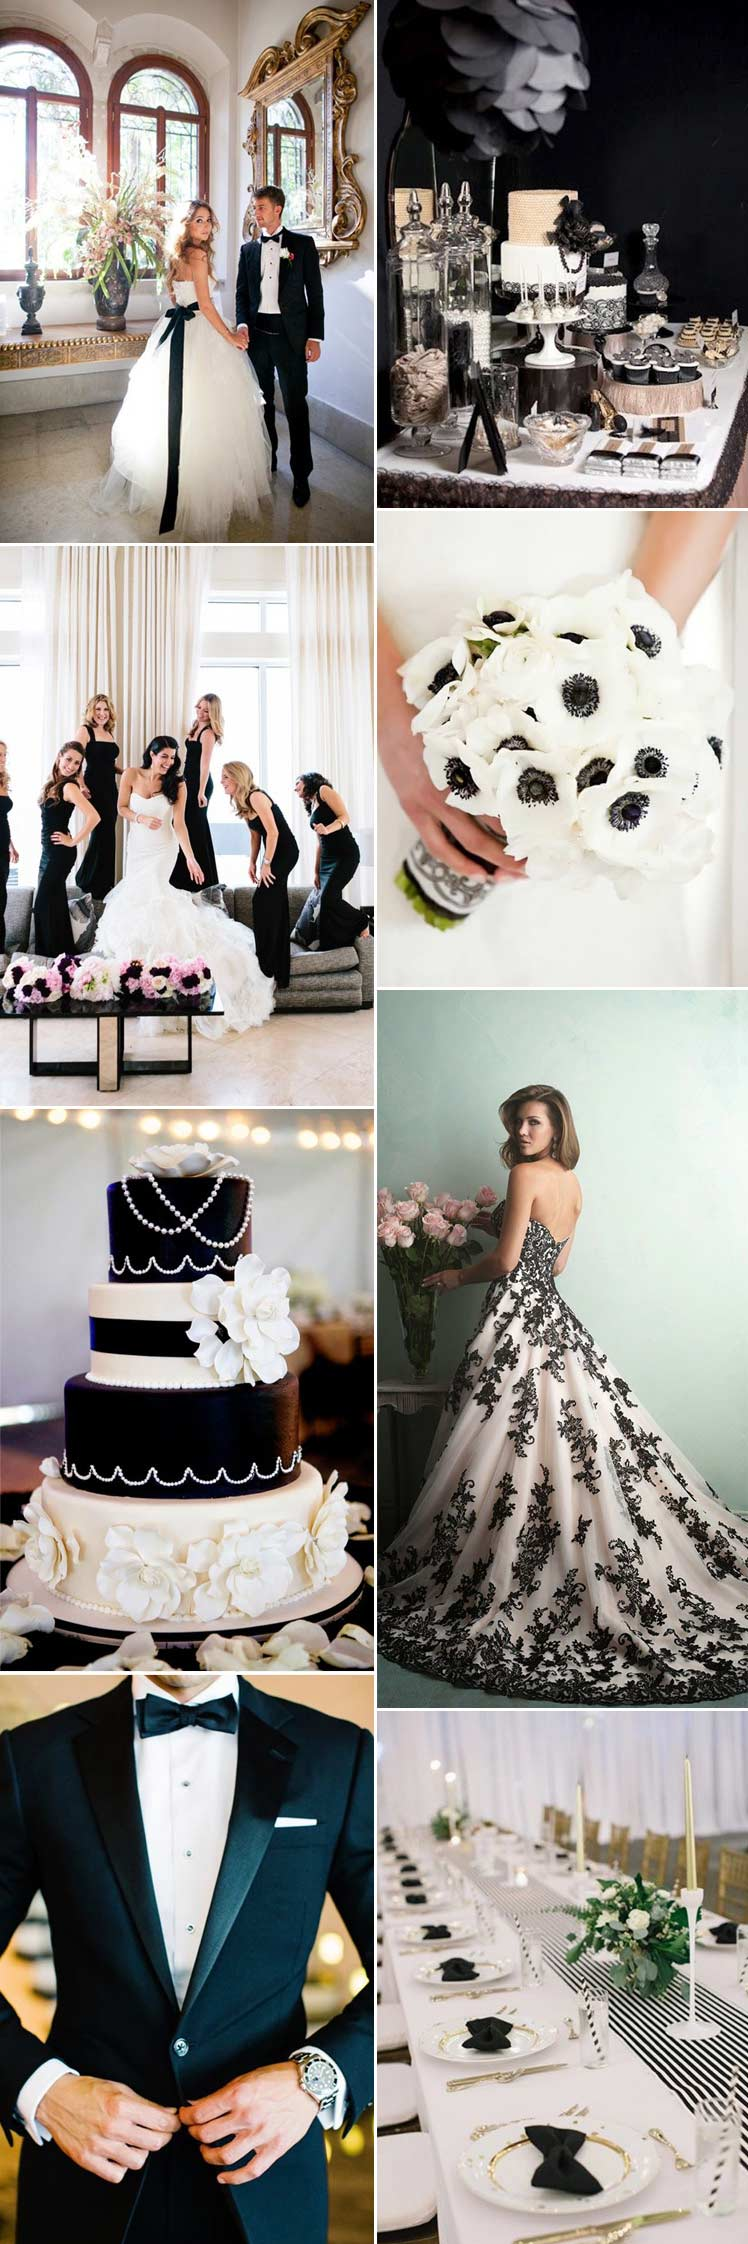 elegant and glamorous - black and white wedding ideas